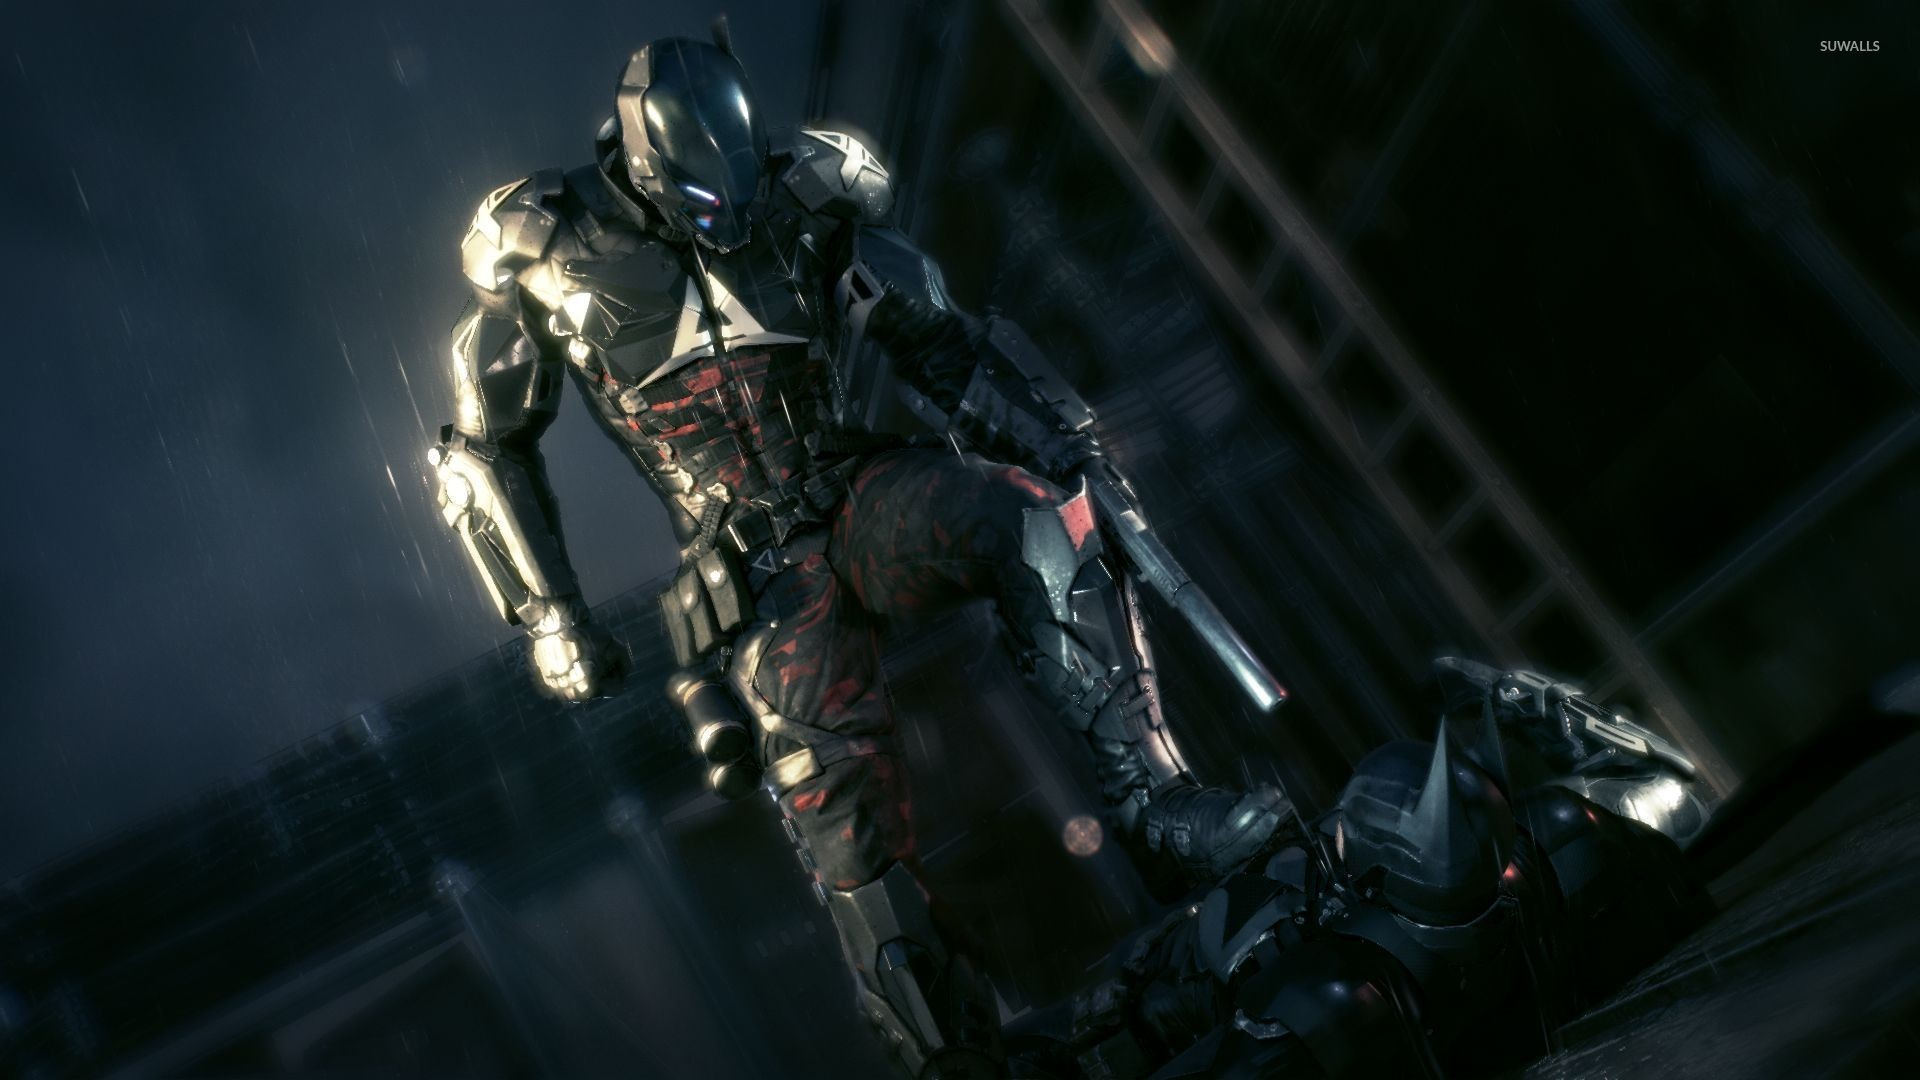 1920x1080 Batman Arkham Knight Skin Pack Available Free for Download DRM